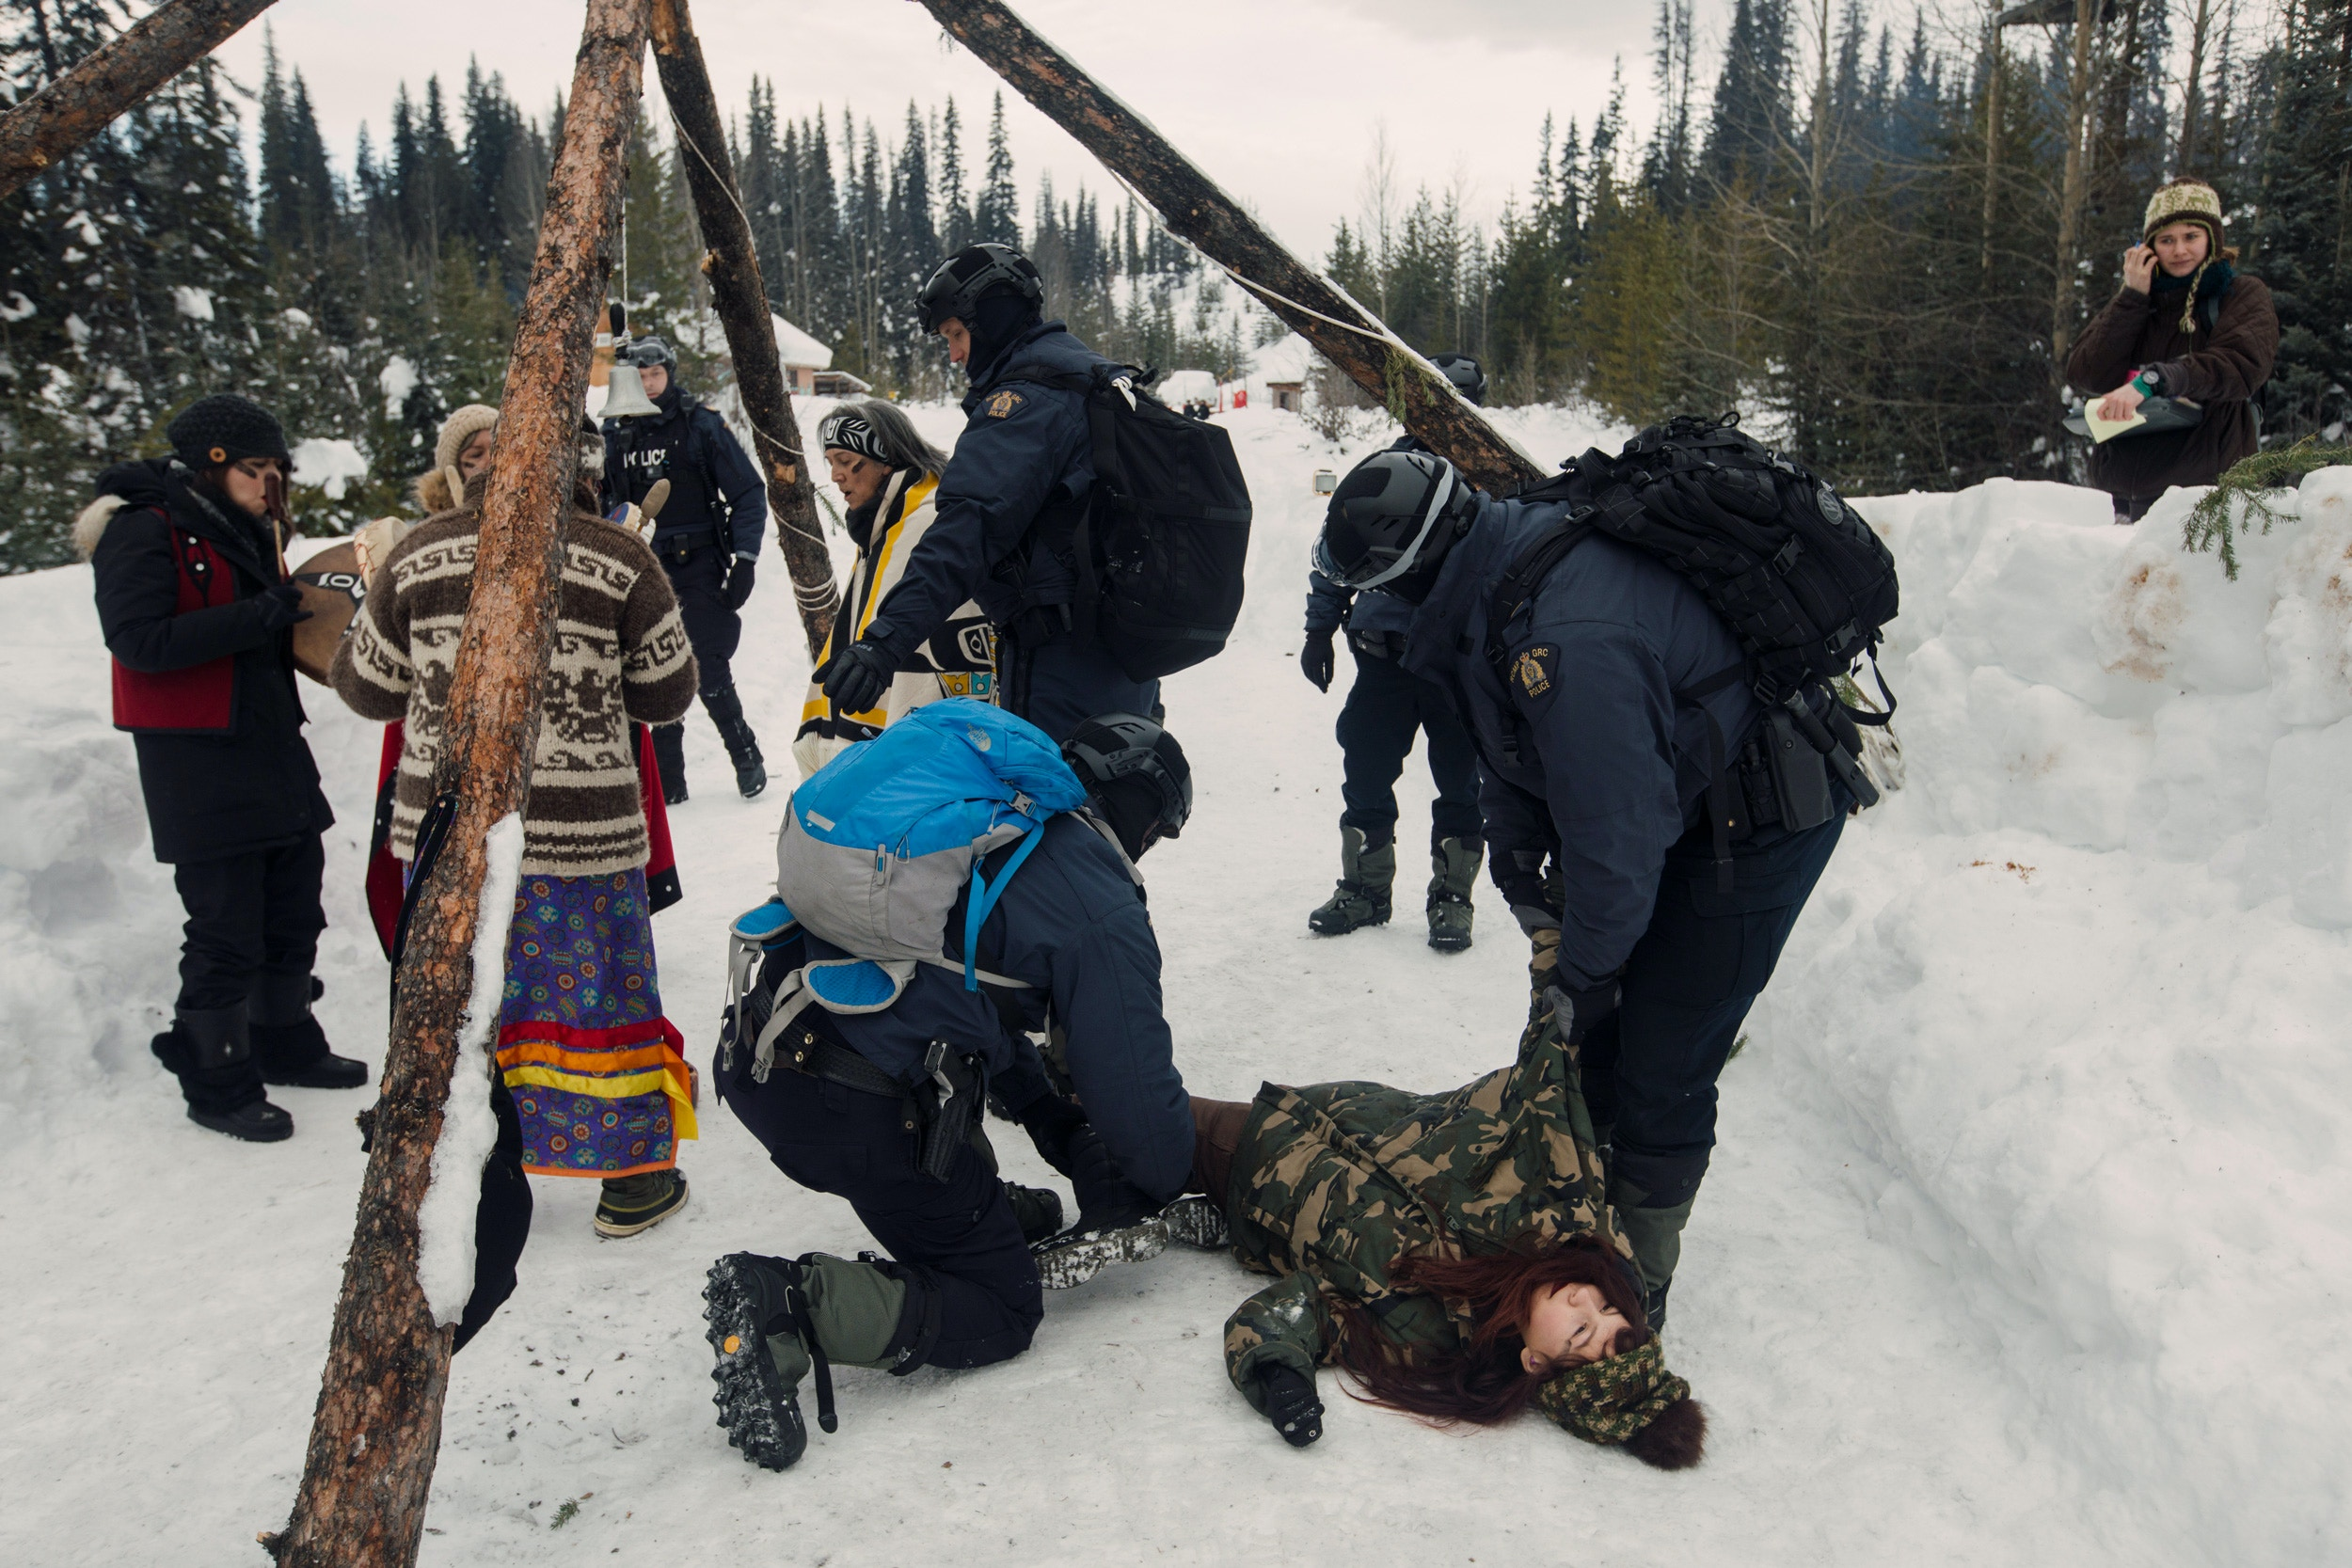 Nlaka'pamux supporter Autumn Walken goes limp as she is arrested at Unist'ot'en Healing Centre near Houston, B.C. on Monday, February 10, 2020. Five women and one man stood in ceremony on the road, in defiance of Coastal GasLink's injunction to force access to the unceded territory. Amber Bracken